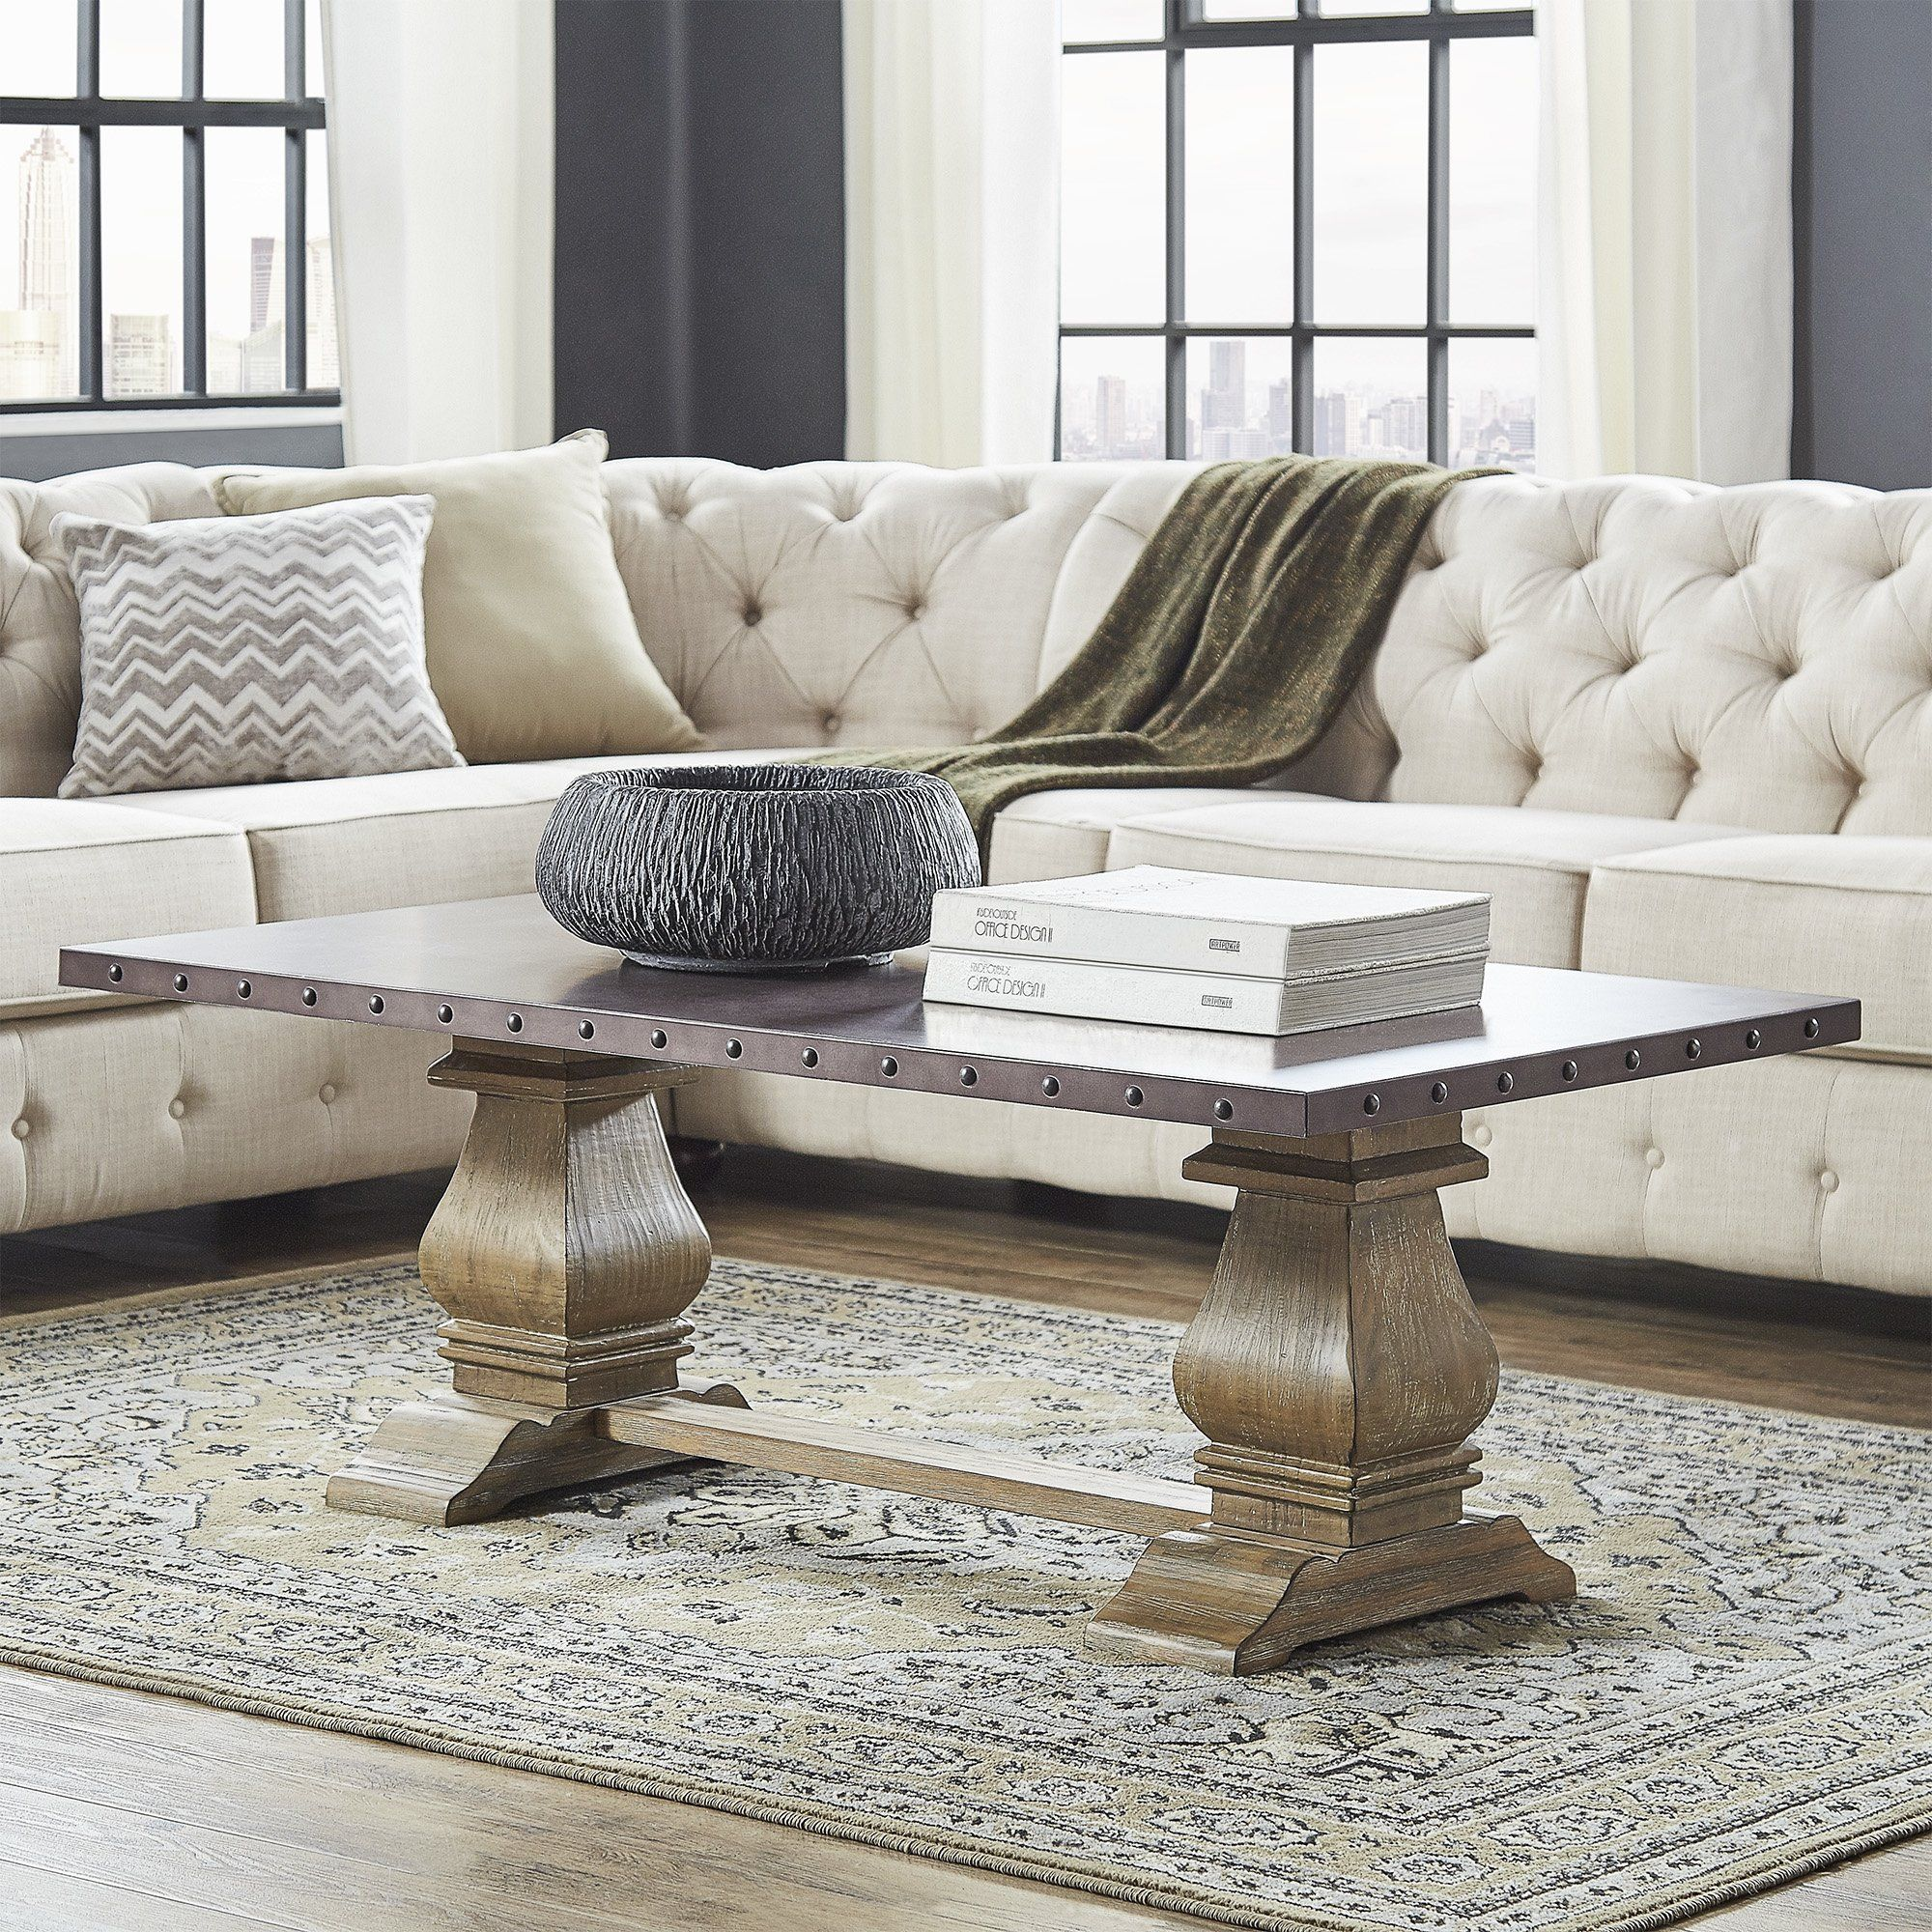 Pin By Wendy Gupta On Coffee Table Coffee Table Furniture Home Decor [ 2000 x 2000 Pixel ]